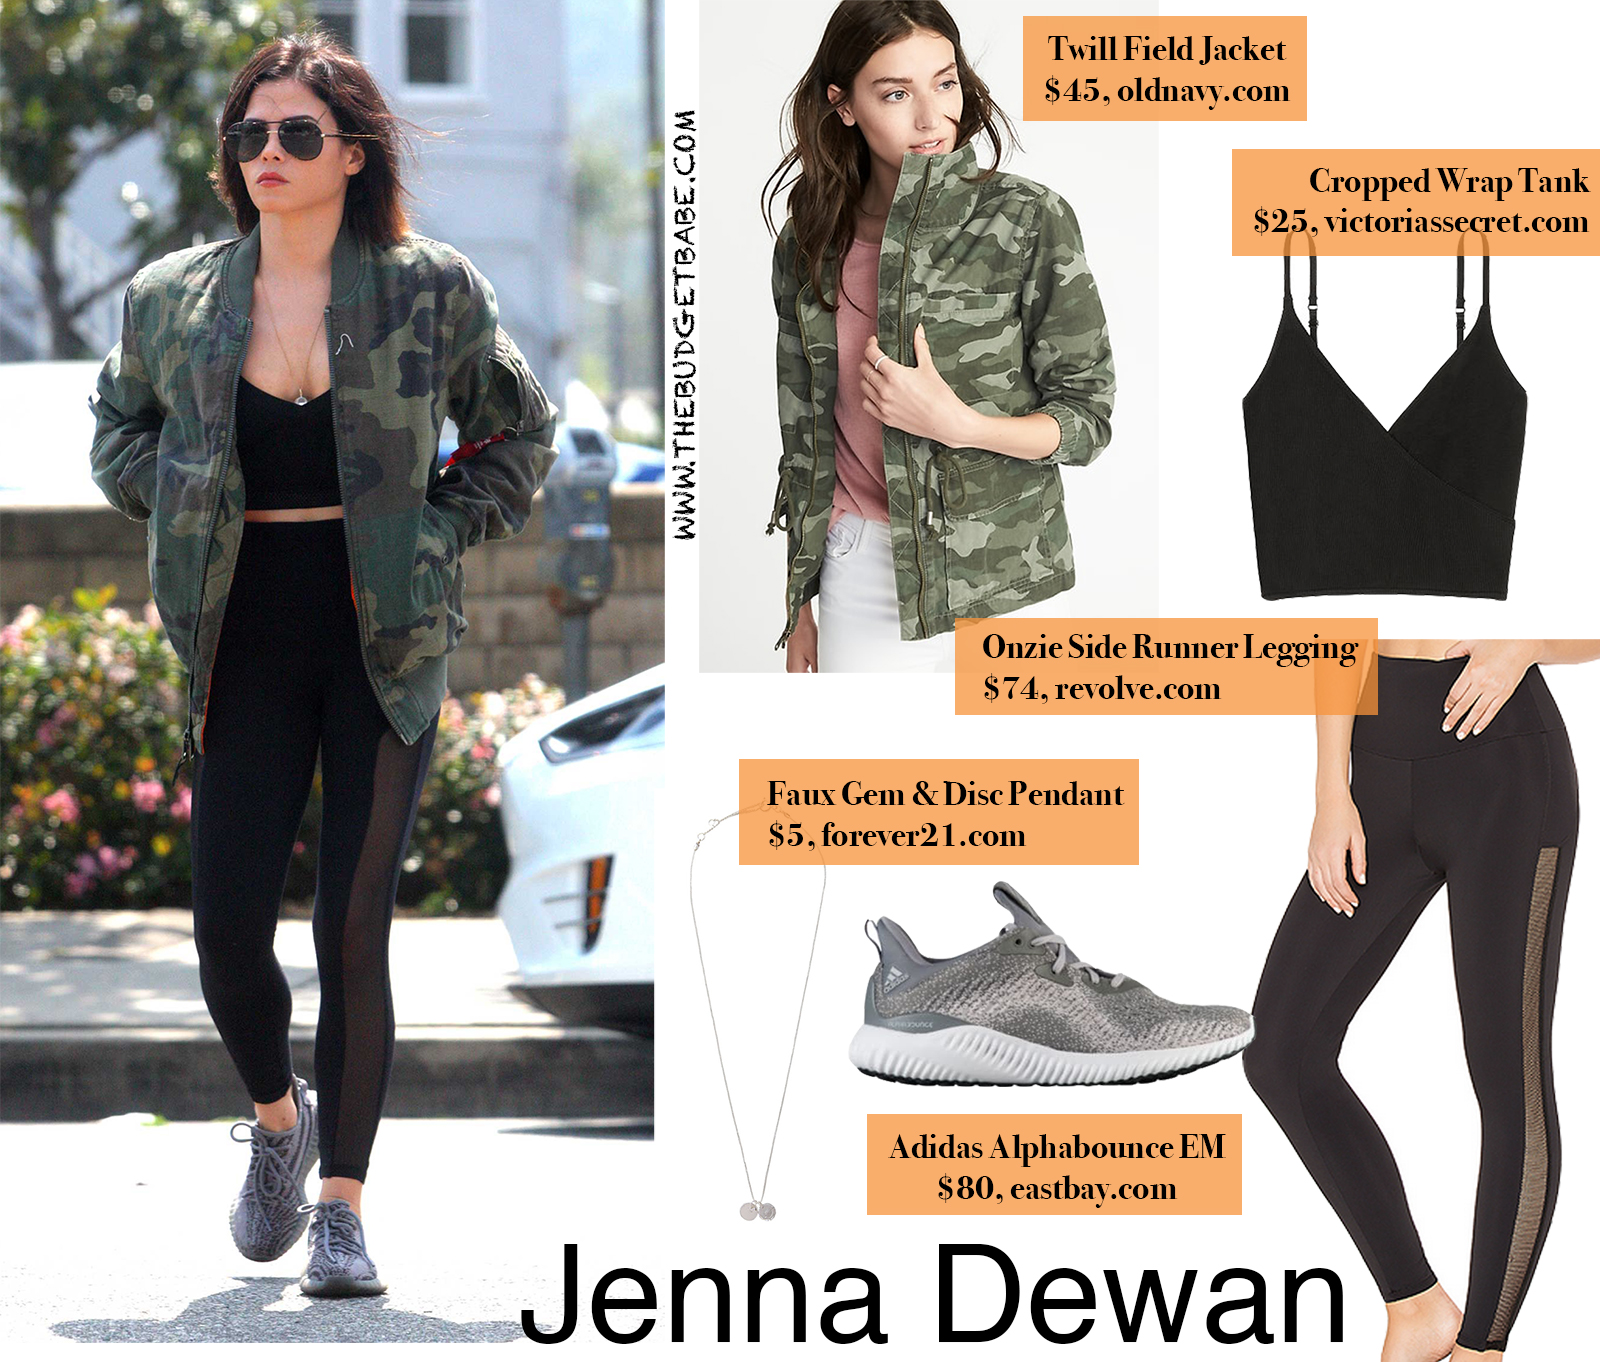 Jenna Dewan Camo Jacket and Mesh Leggings Look for Less